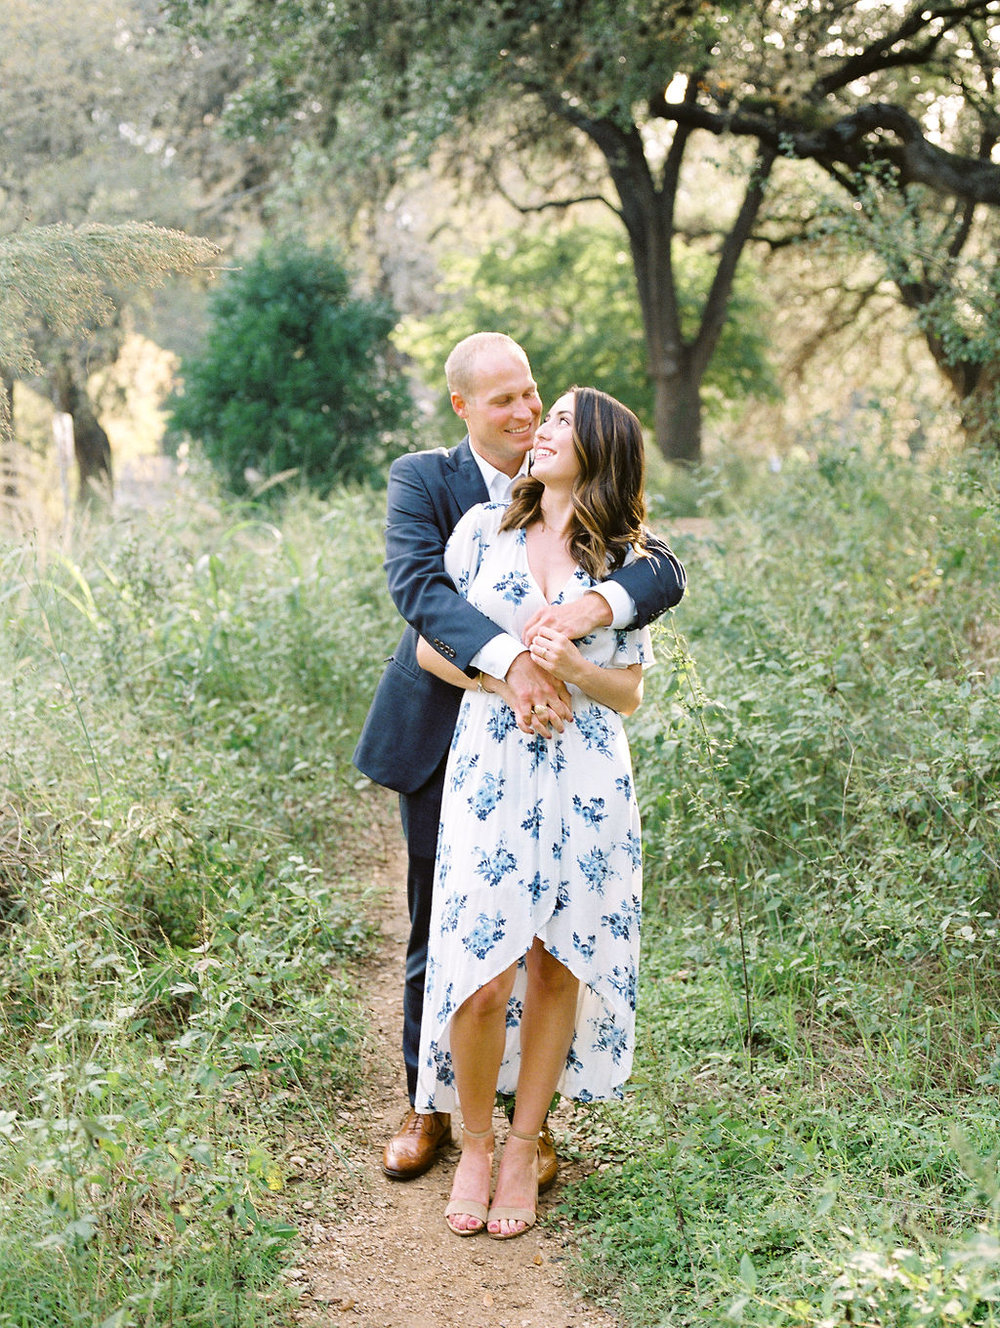 Austin-Film-Engagement-Photographer-adventurous-fine-art-25.jpg